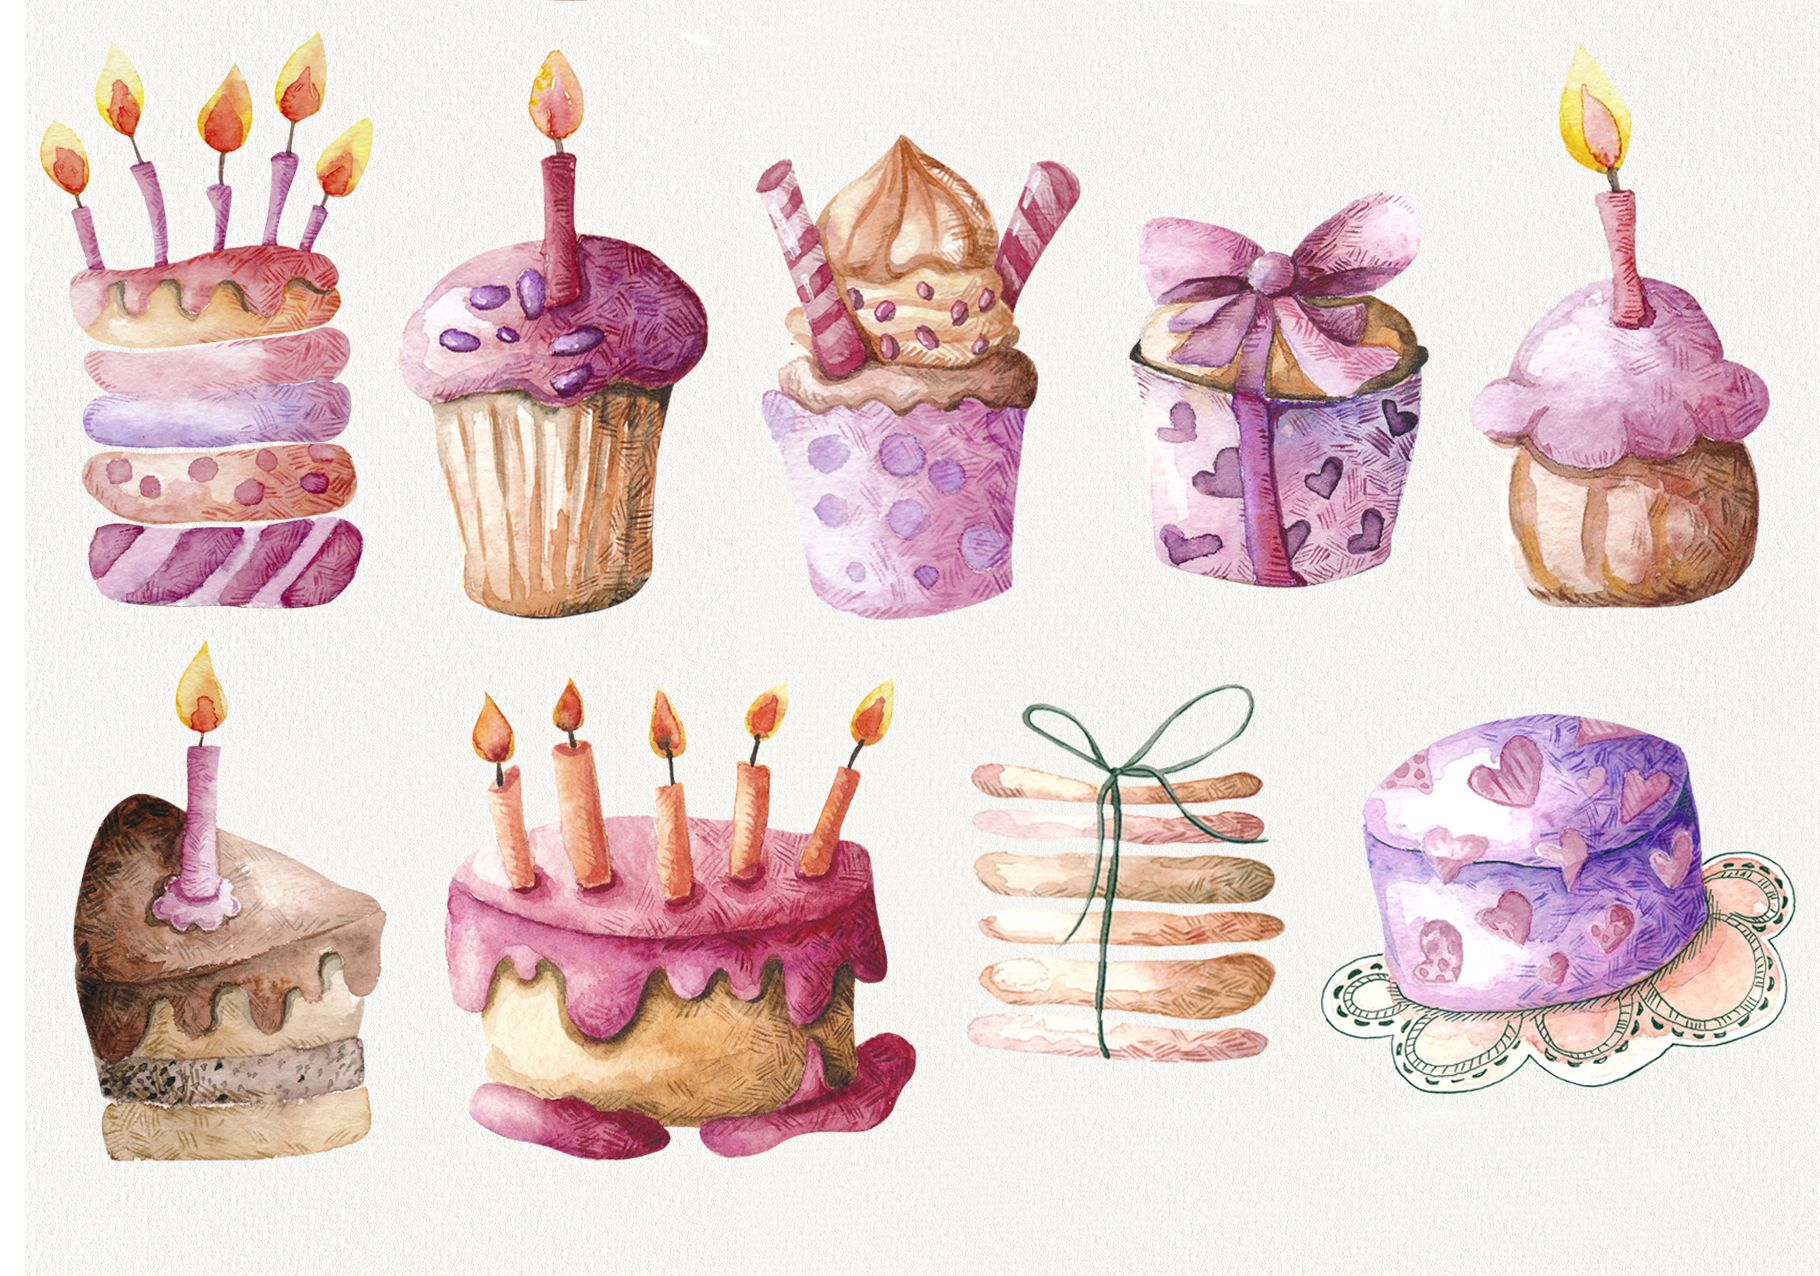 Birthday Party Watercolor Clipart 137998 Illustrations Design Bundles Watercolor Clipart Illustration Art Kids Clip Art